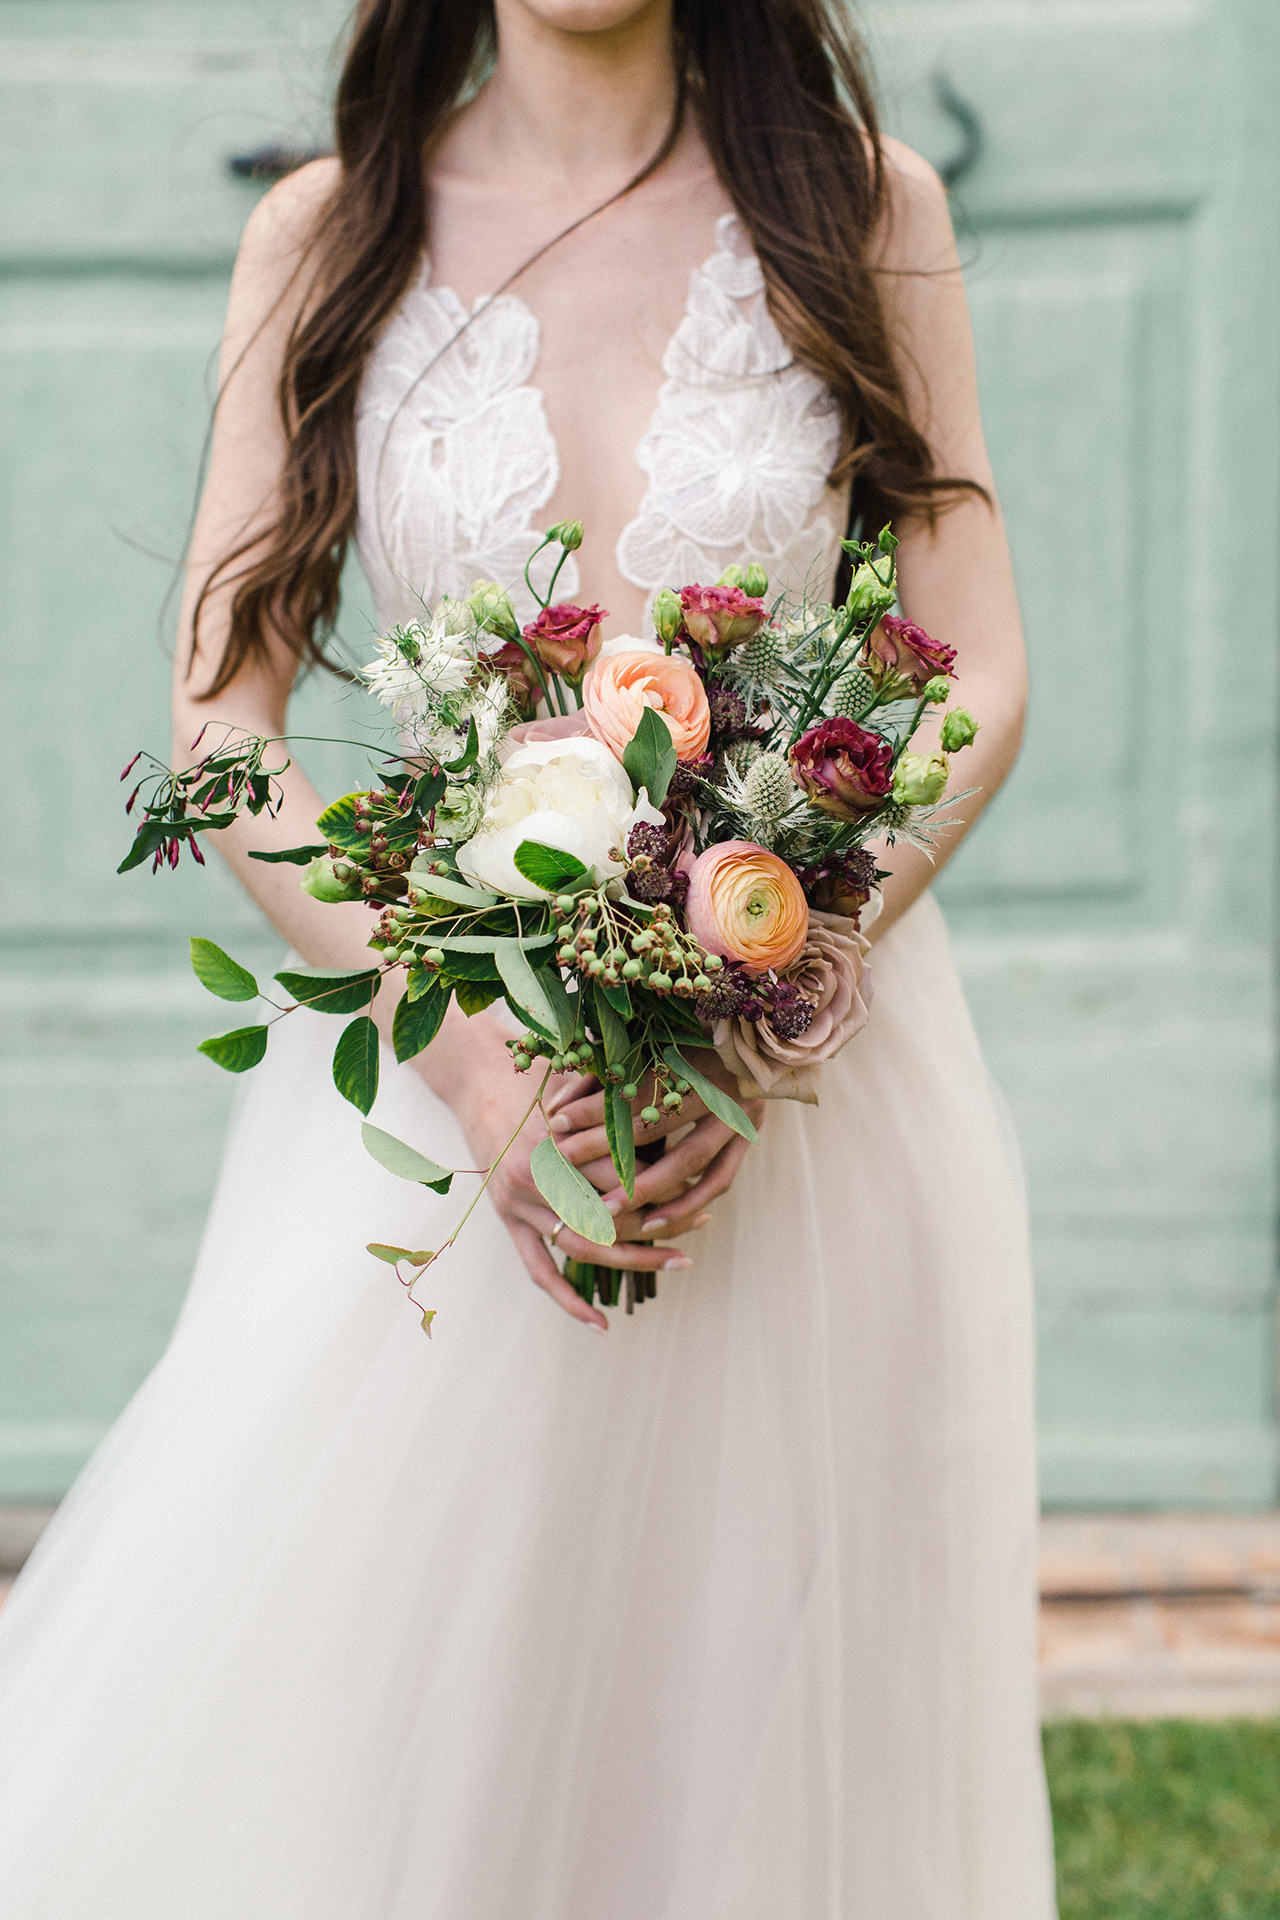 A Lush, Loose Bridal Bouquet